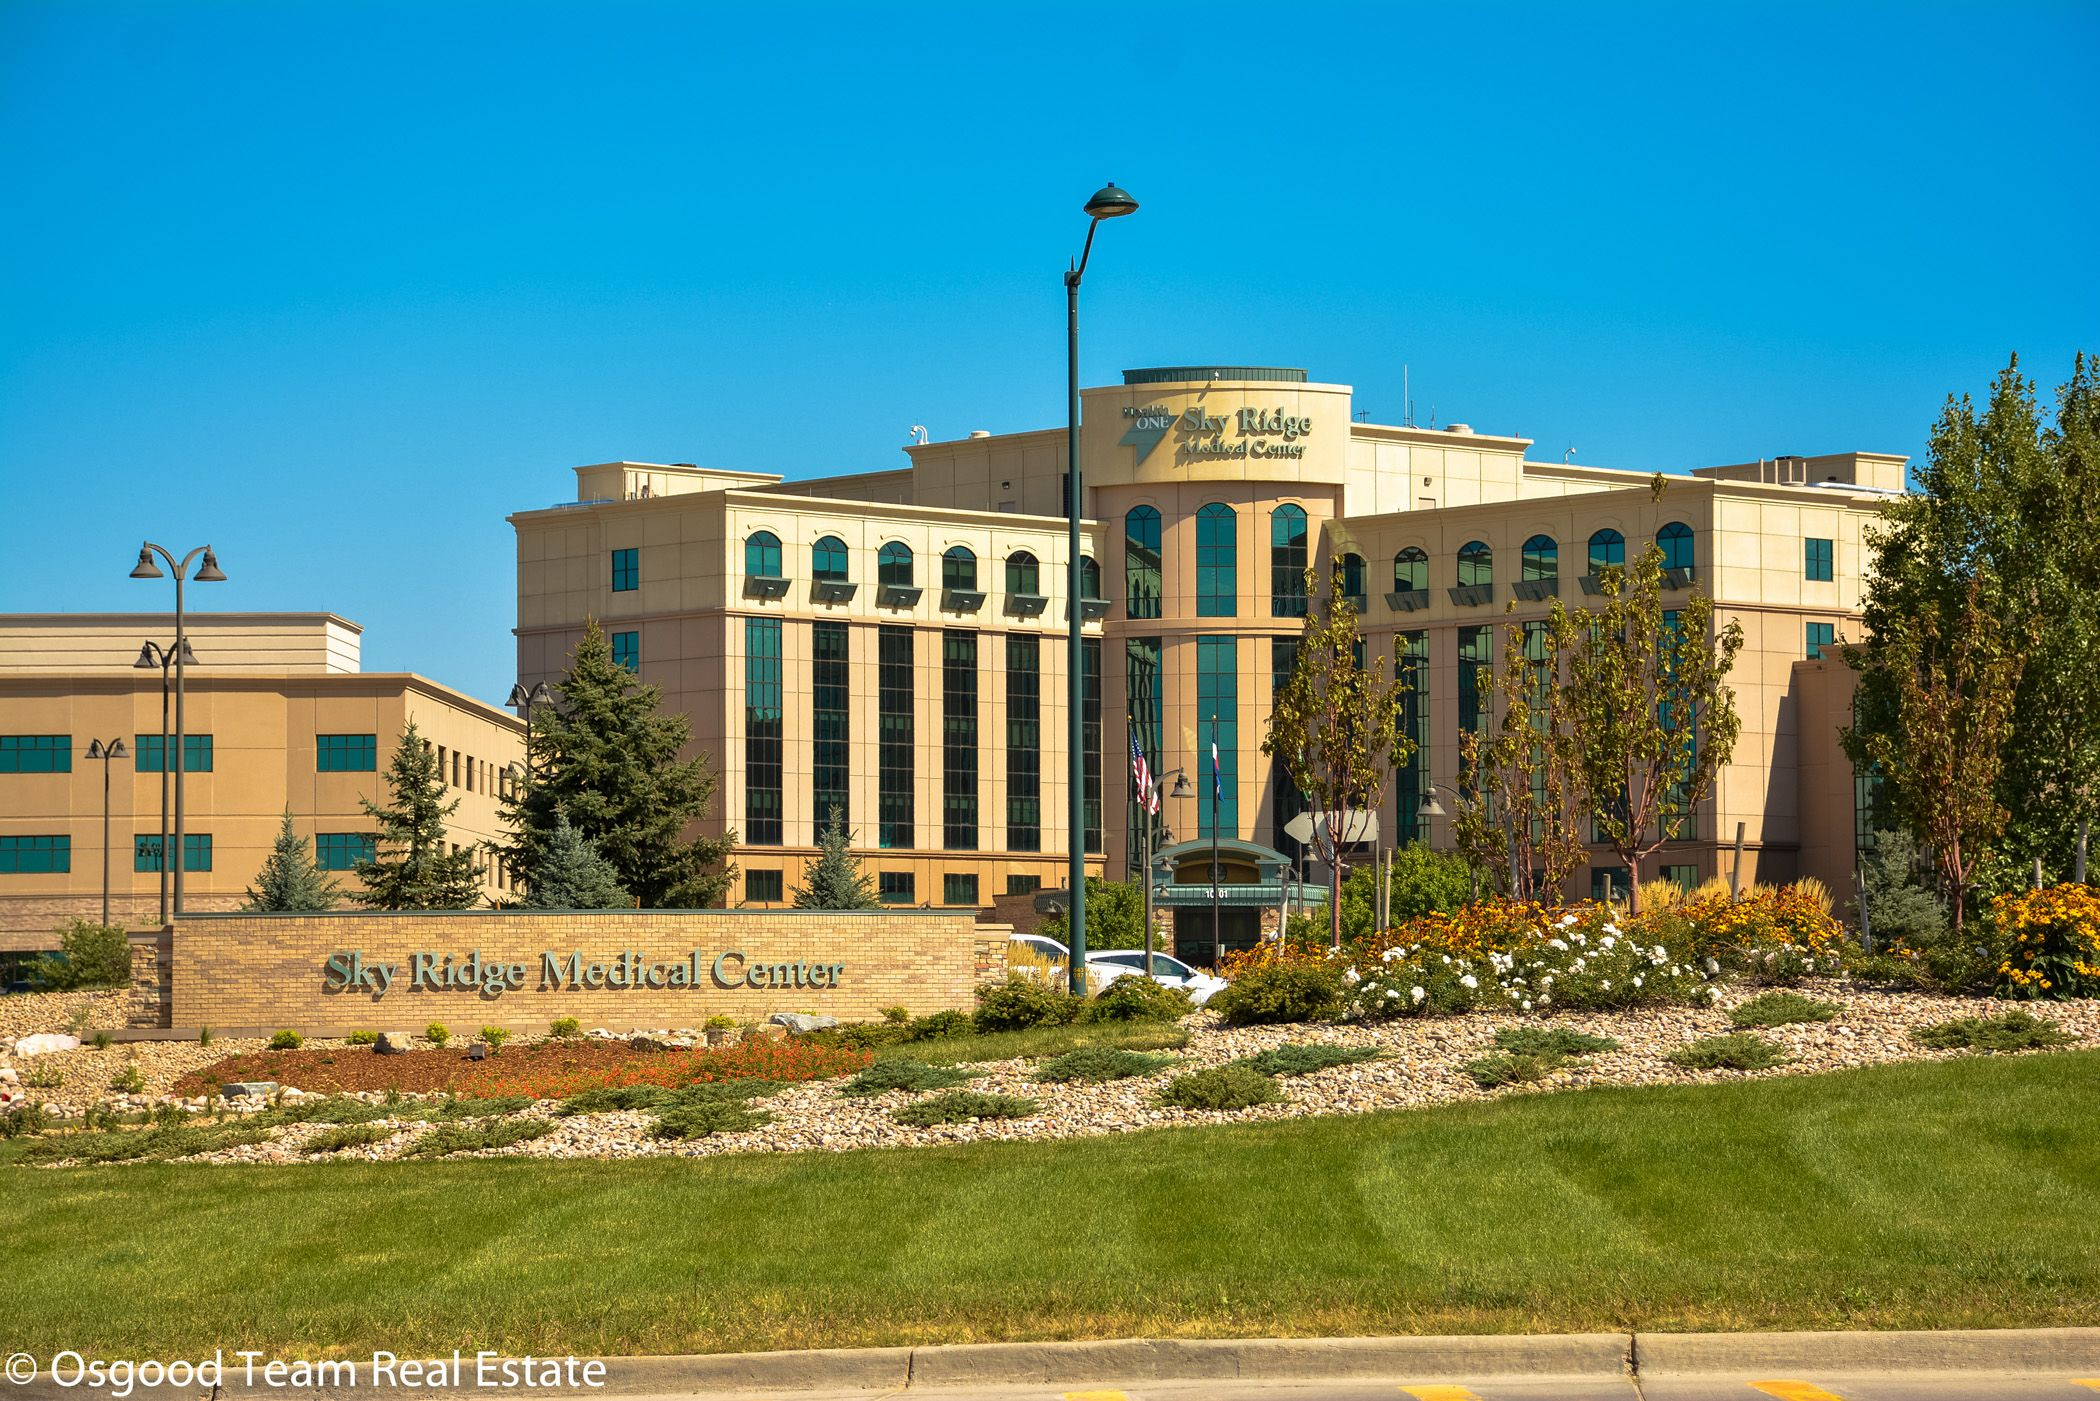 Sky Ridge Medical Center located in Lone Tree located at